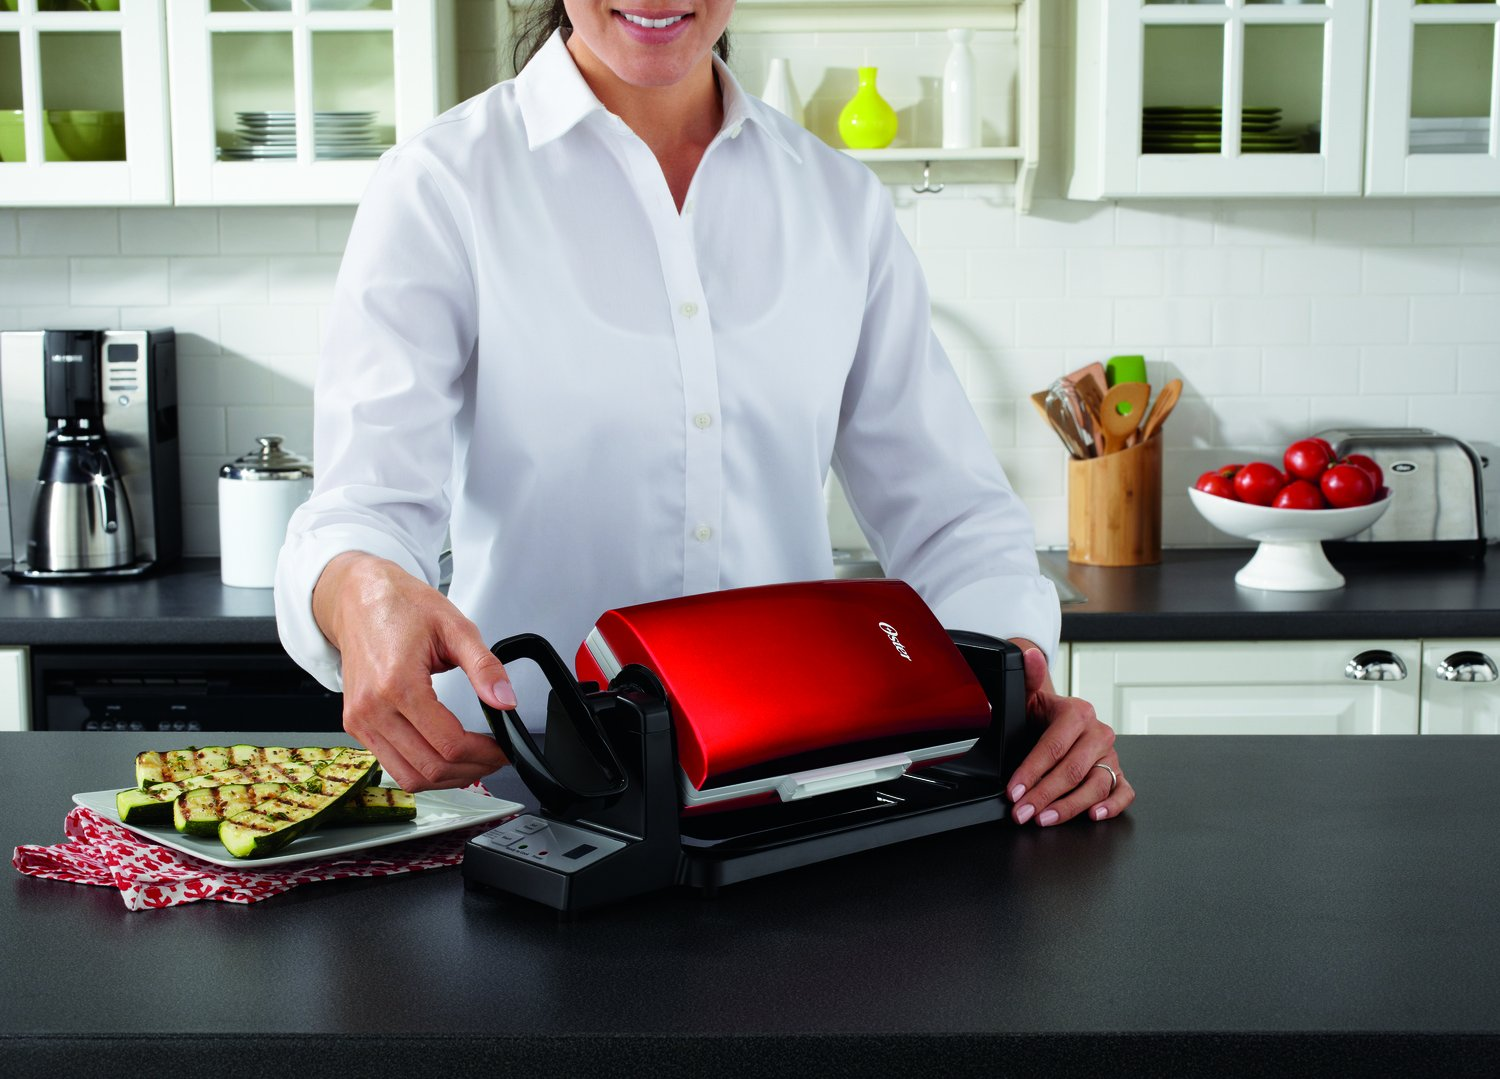 Oster 7-Minute Grill with DuraCeramic Coating and Digital Timer, Red/White, CKSTCG22R-ECO by Oster (Image #3)